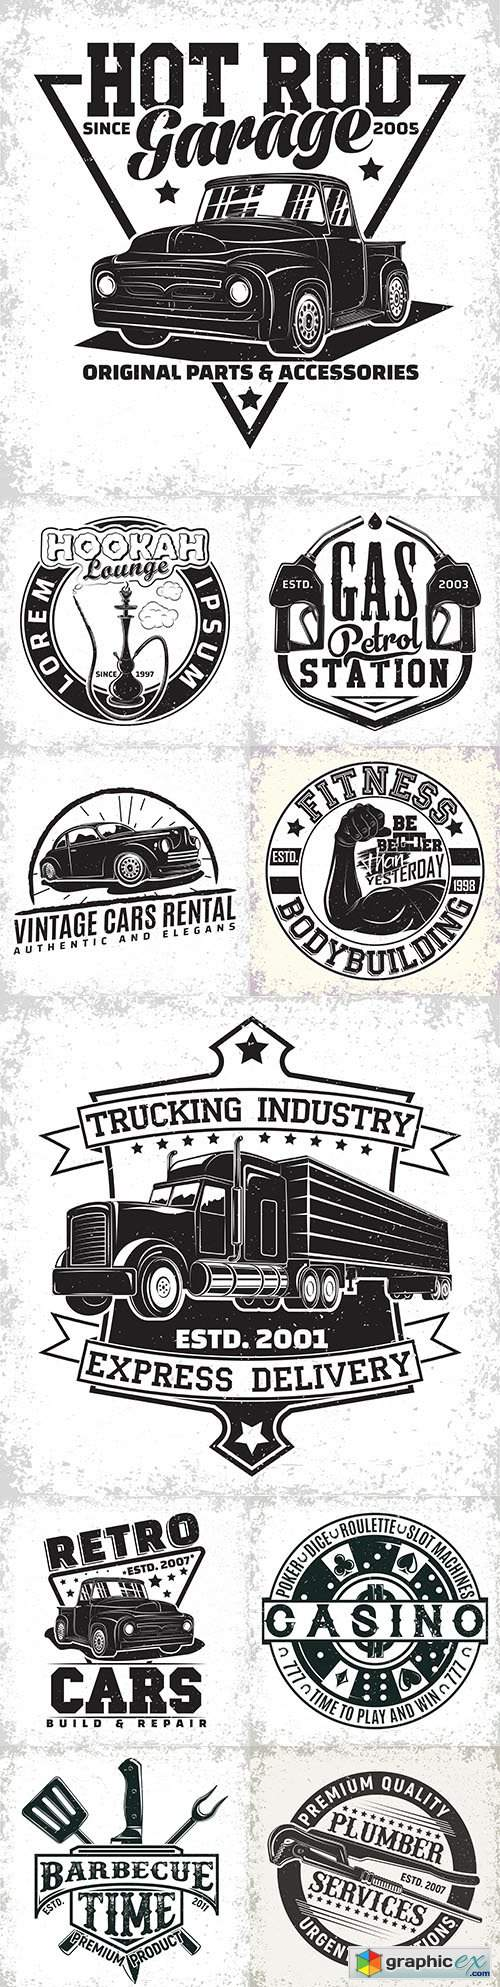 Vintage logo and emblem monochrome design